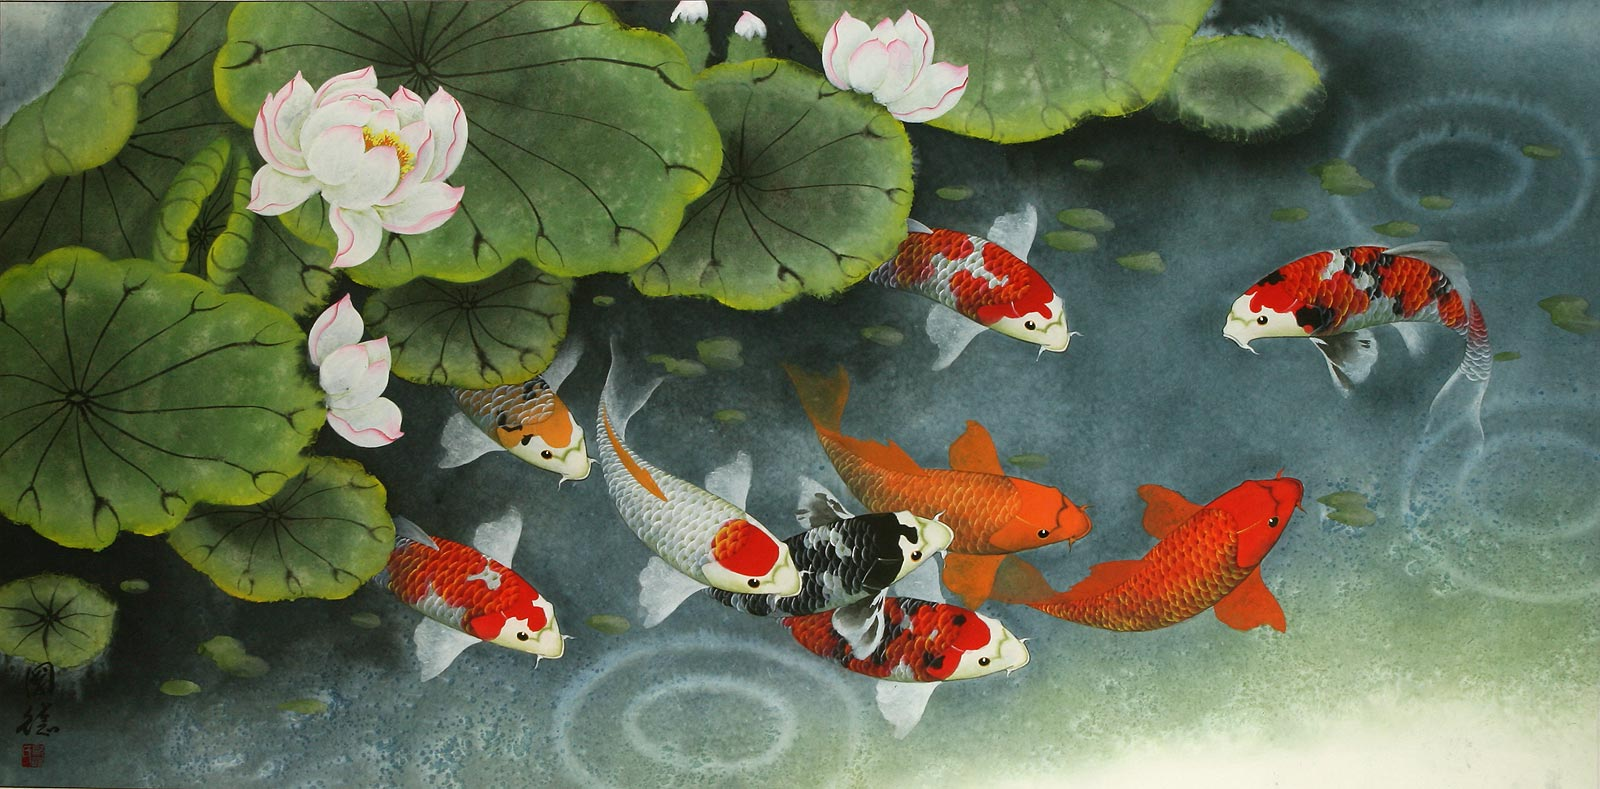 Koi fish feeding time painting asian koi fish paintings wall scrolls chinese art for Chinese coy fish